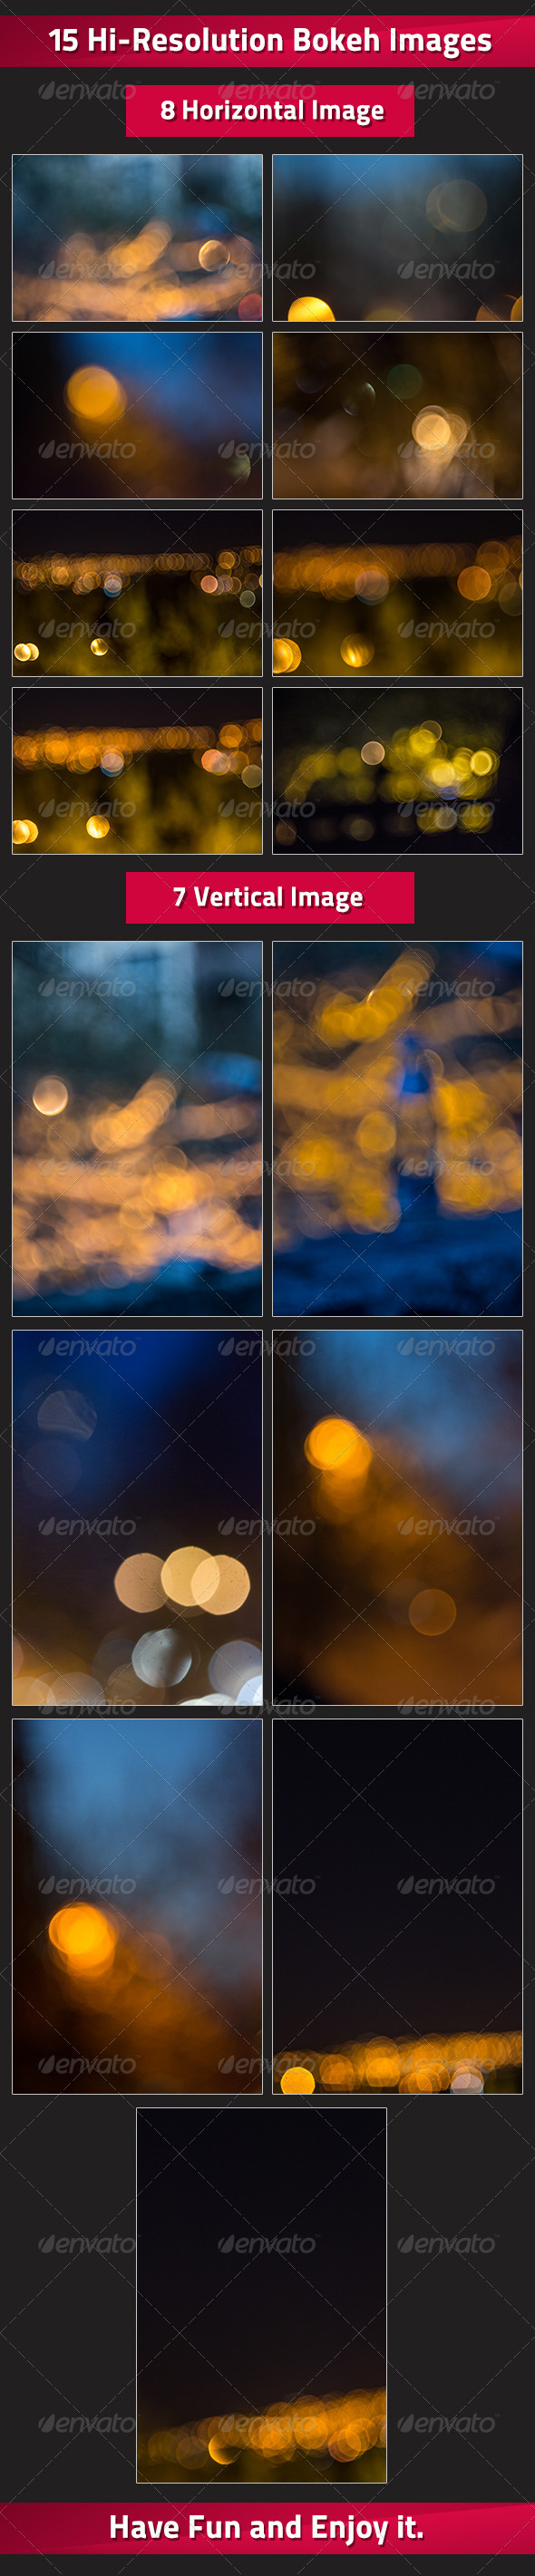 Set of 15 Bokeh Images - Abstract Backgrounds